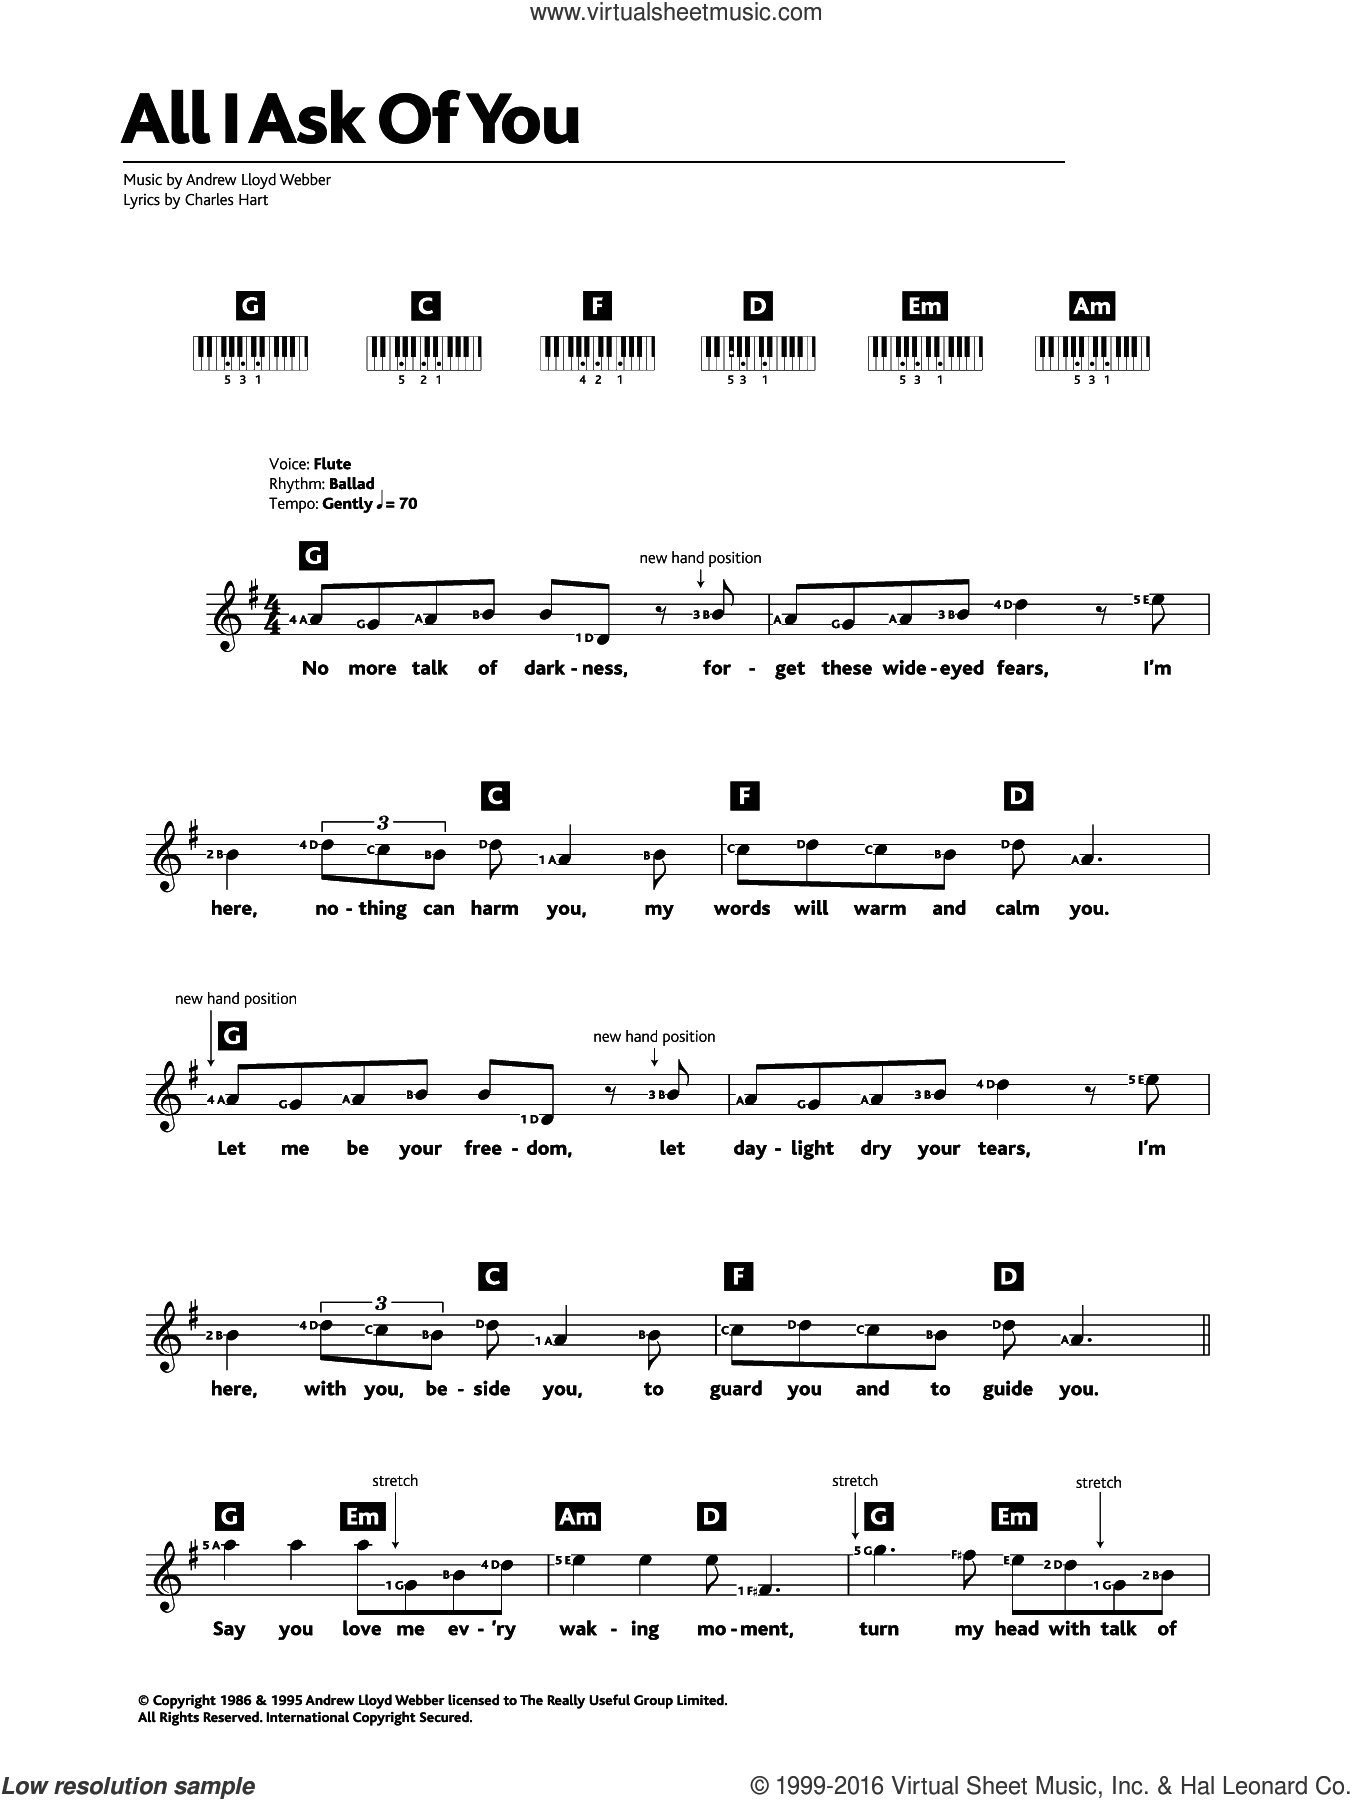 All I Ask Of You (from The Phantom Of The Opera) sheet music for piano solo (chords, lyrics, melody) by Andrew Lloyd Webber, Charles Hart and Richard Stilgoe, intermediate piano (chords, lyrics, melody)